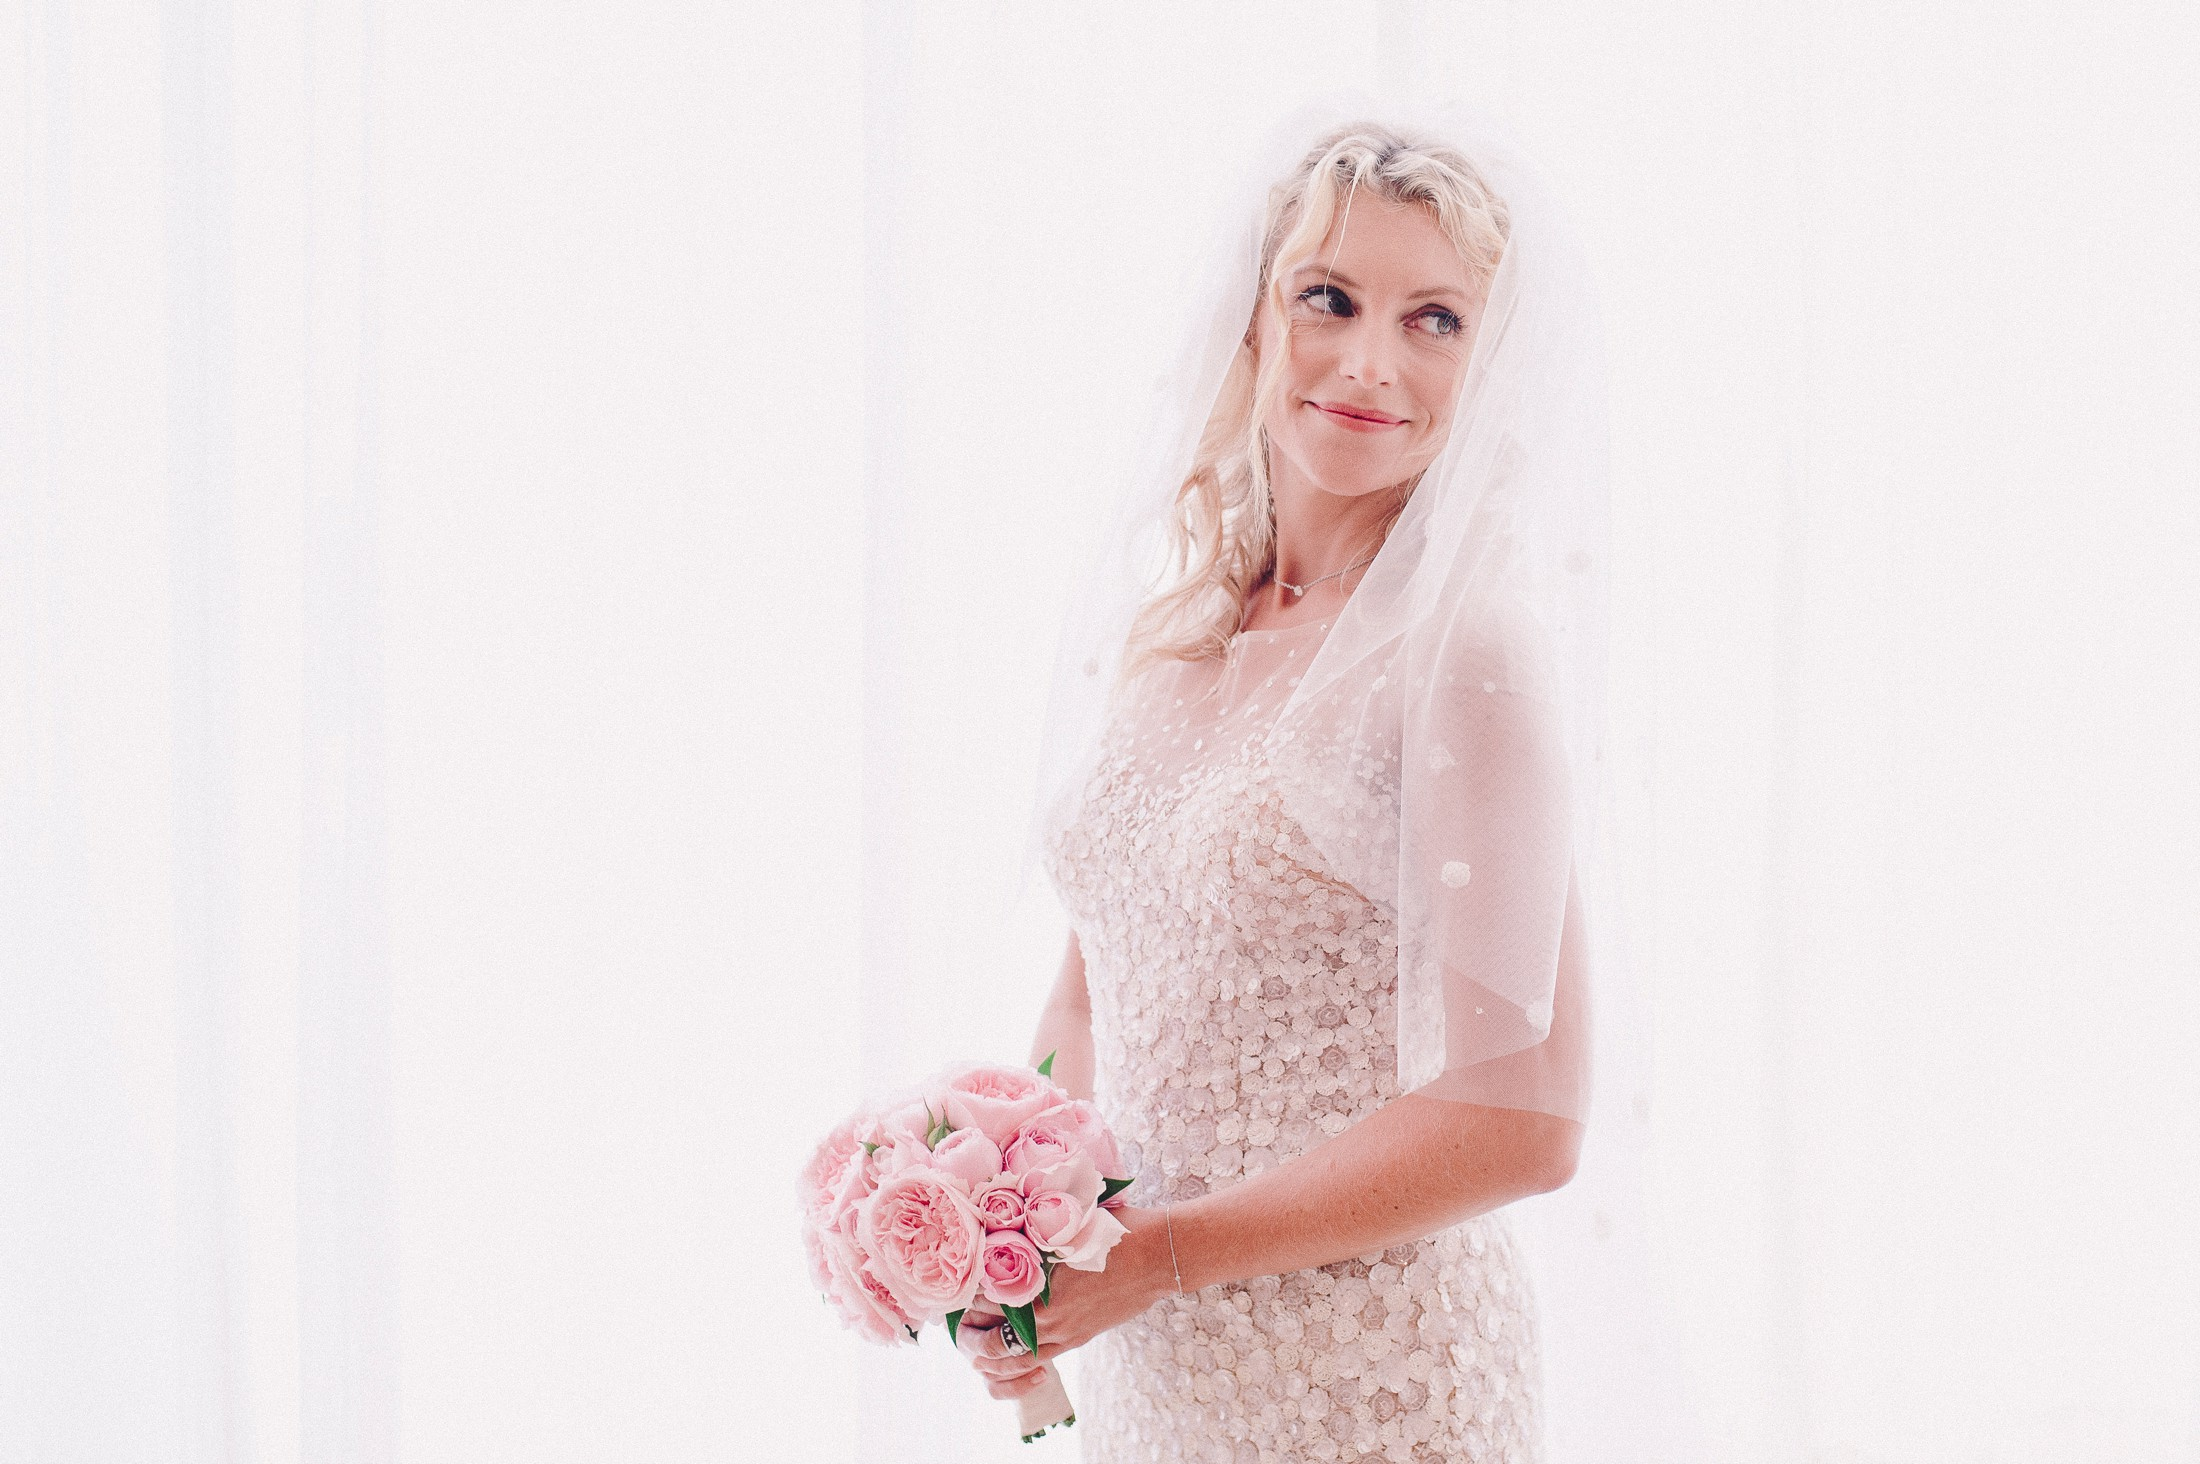 bride's portrait with the wedding veil and the bouquet